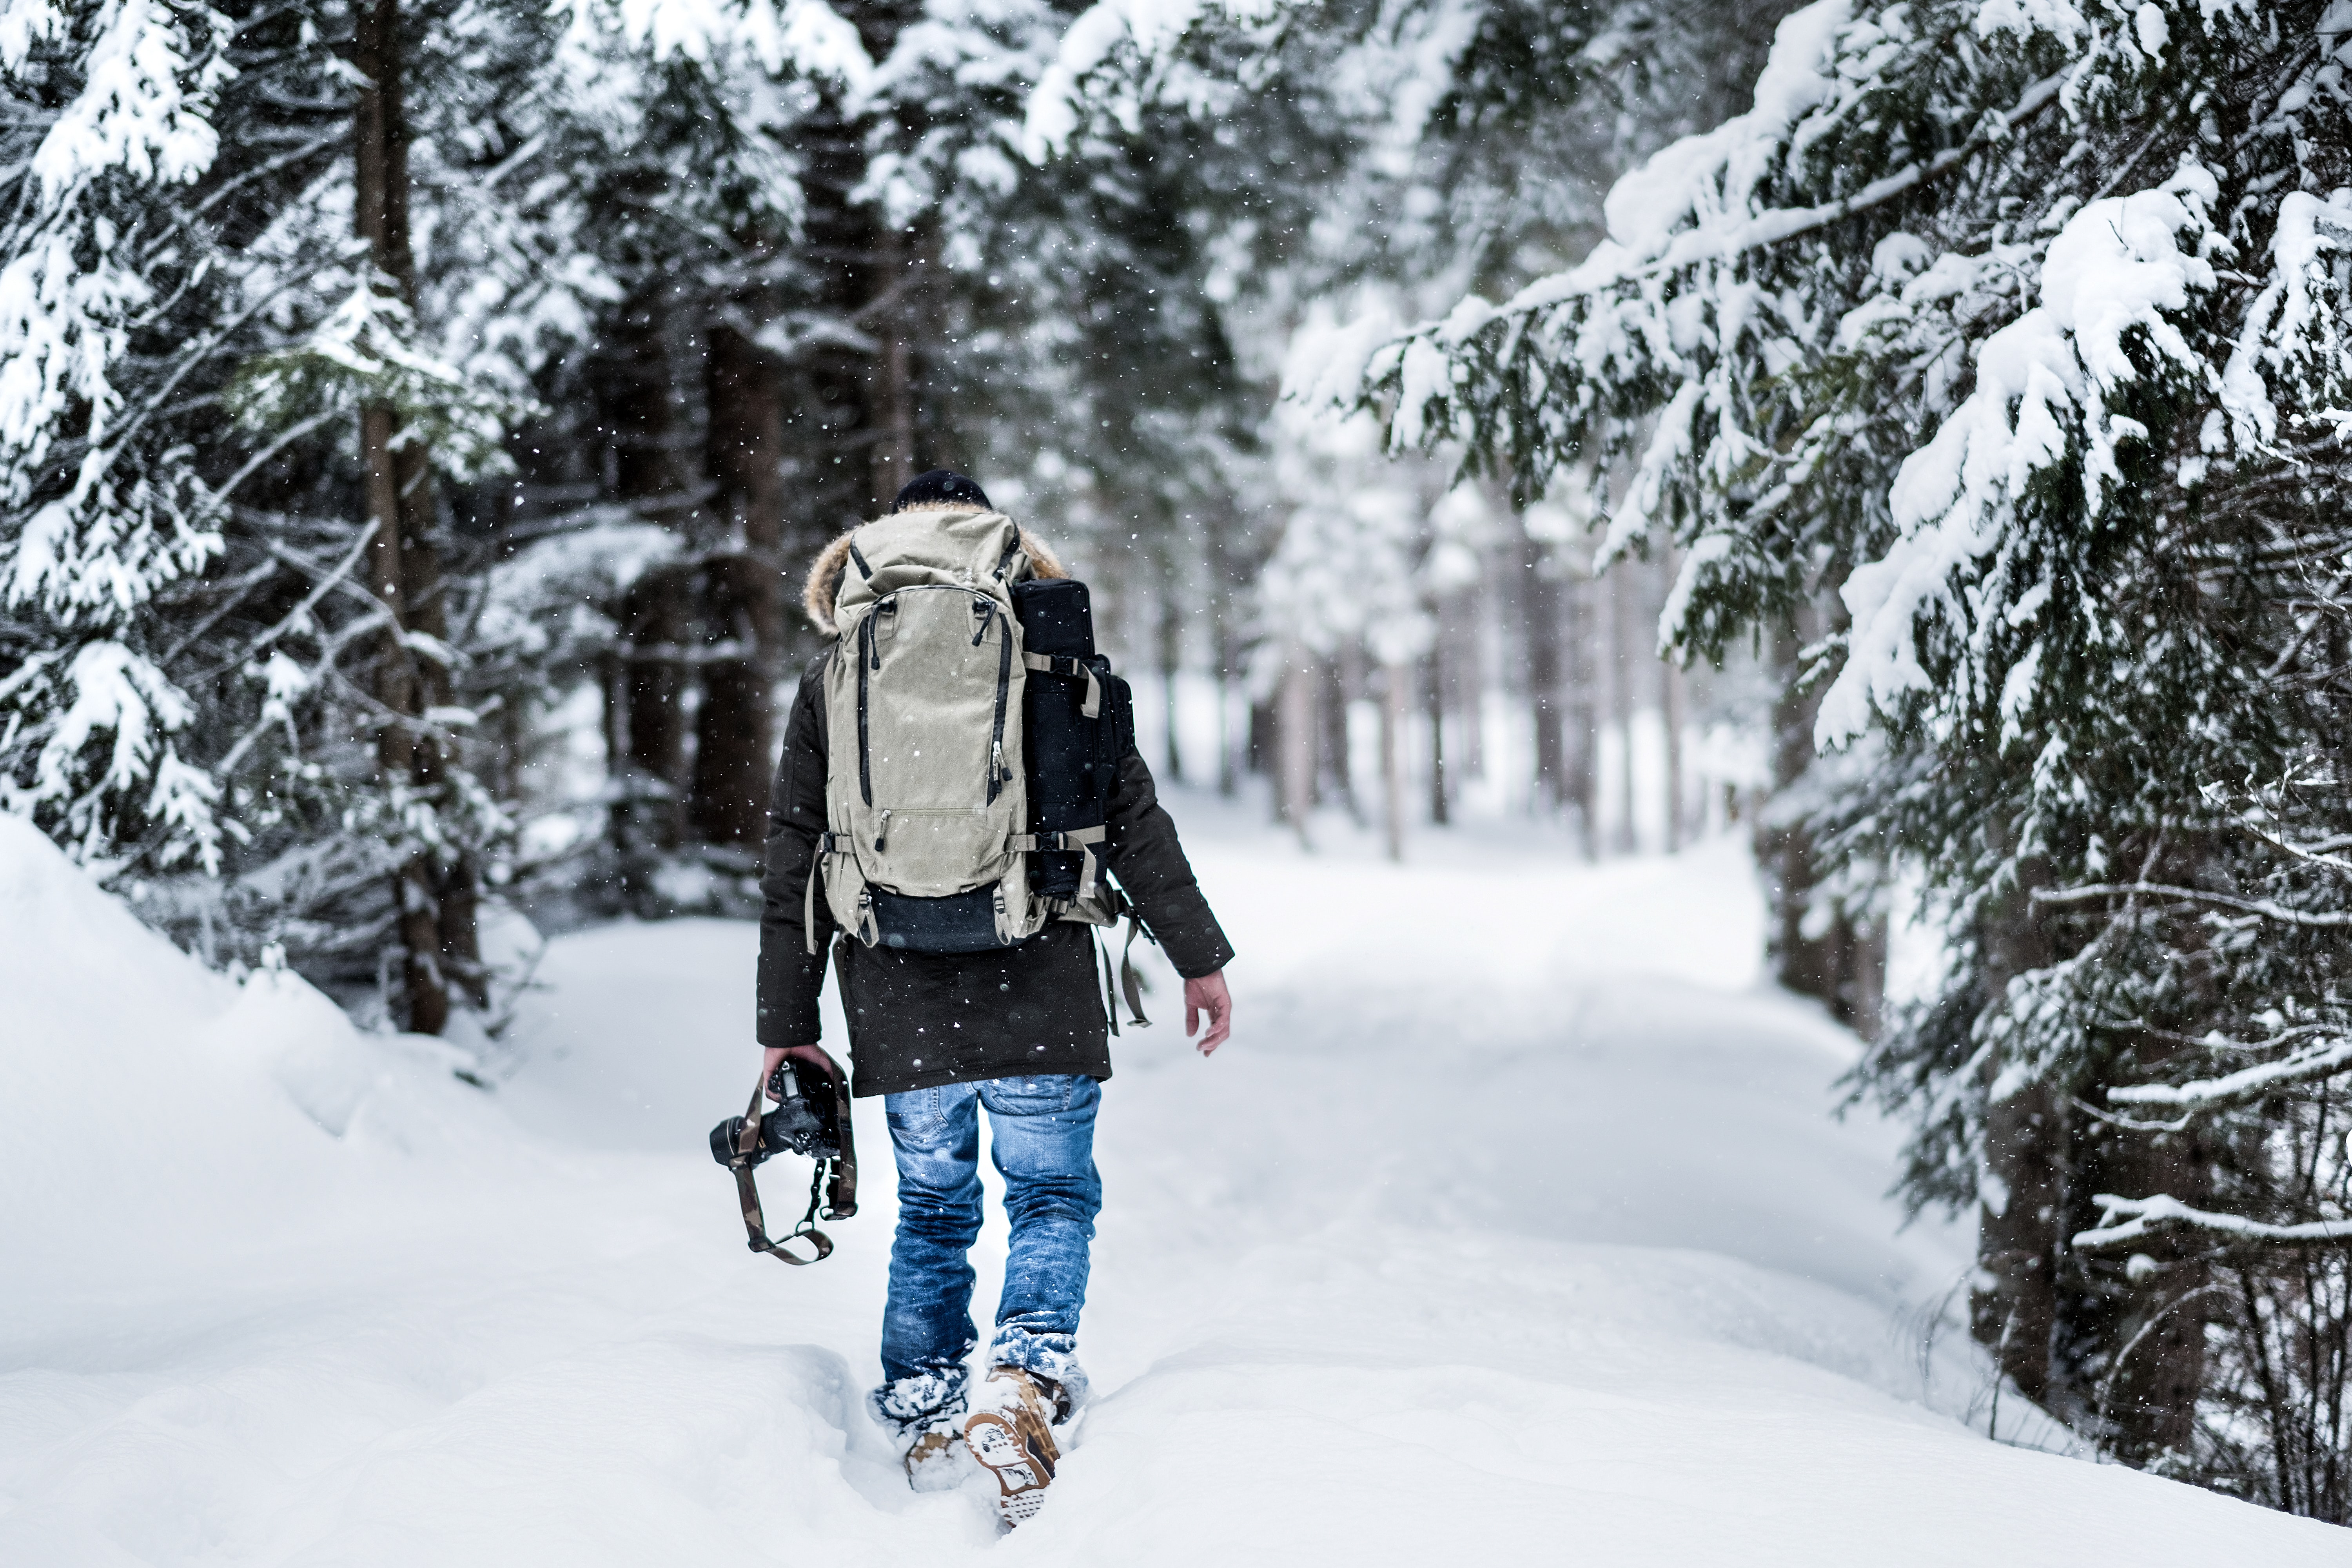 man walking on snow near pine trees covered by snow during daytime